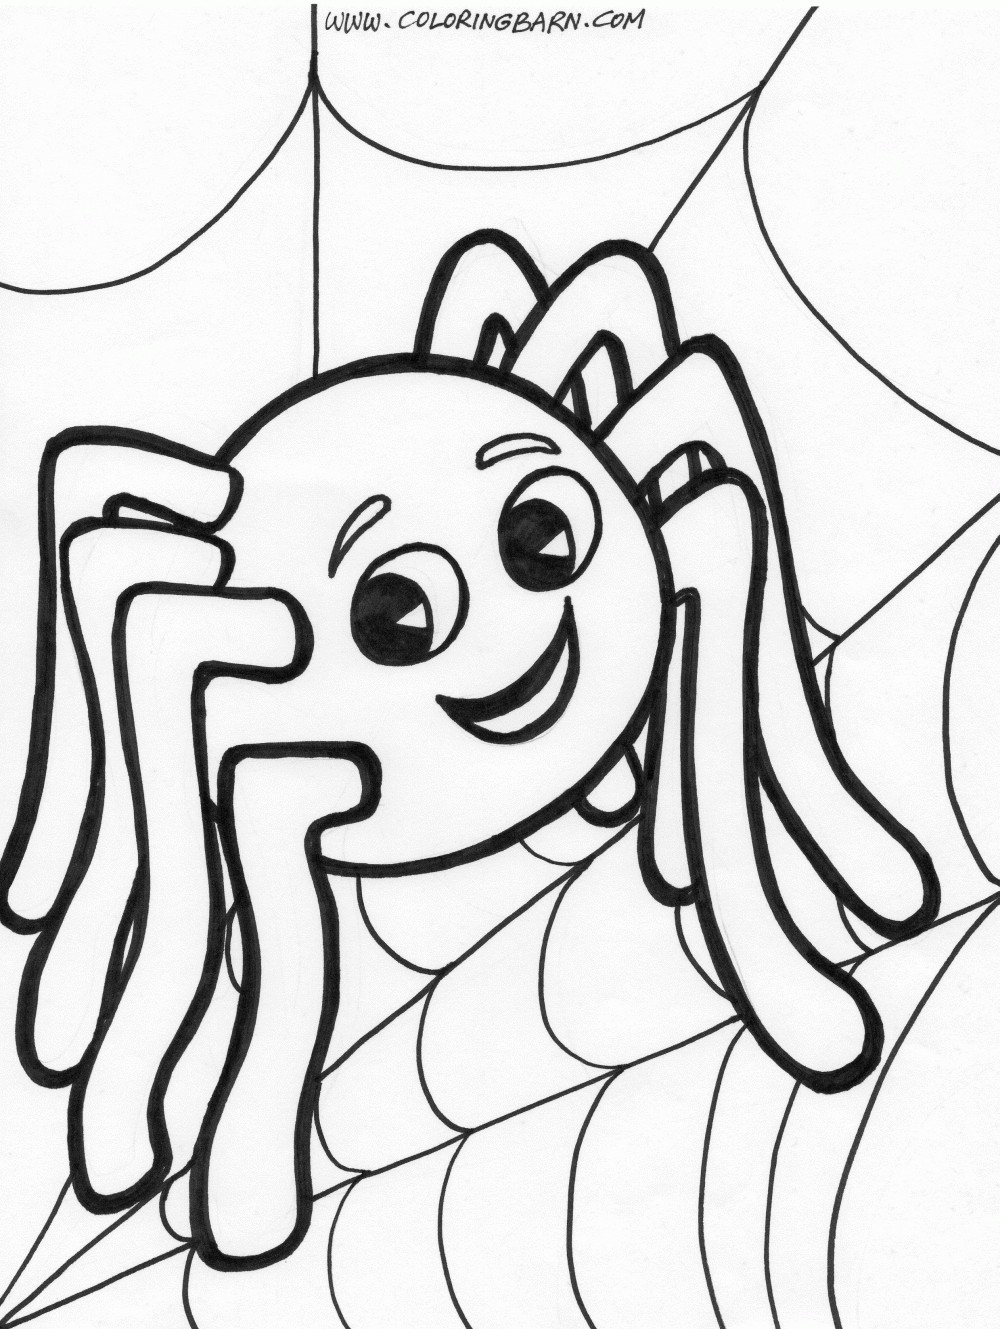 Coloring Pages ~ Exploit Free Printable Coloring Pages For Toddlers - Free Printable Coloring Pages For Toddlers